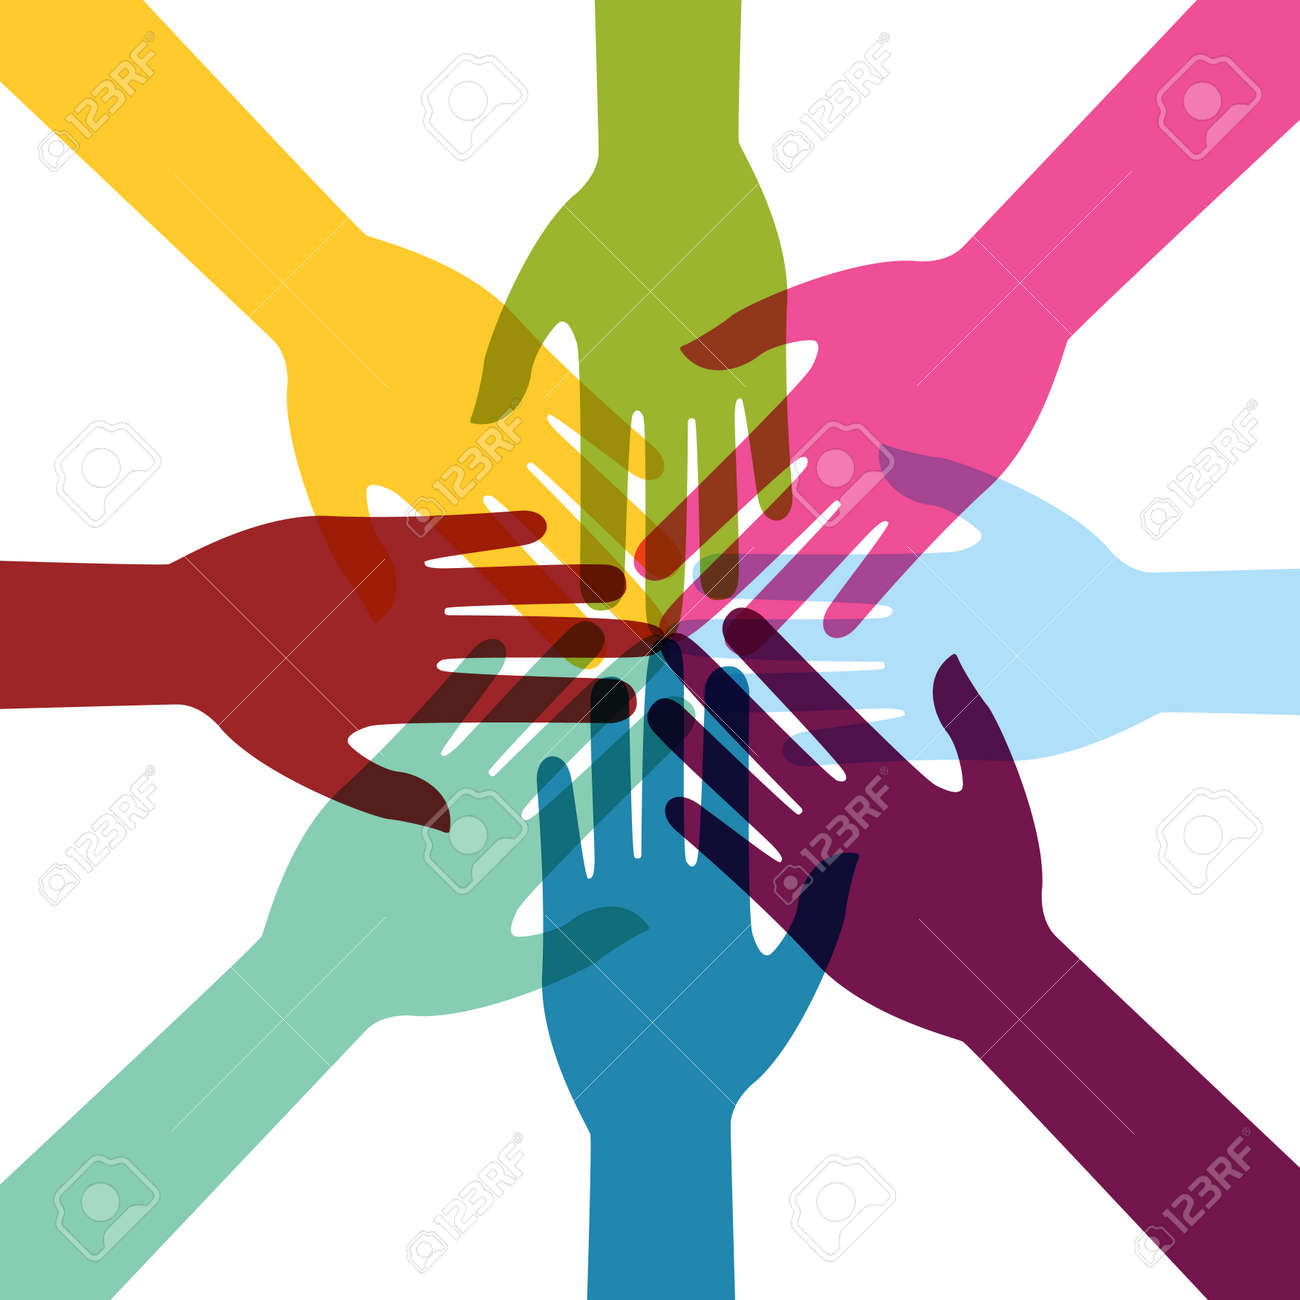 Hand Colorful Creative Connection with Teamwork - 149189266